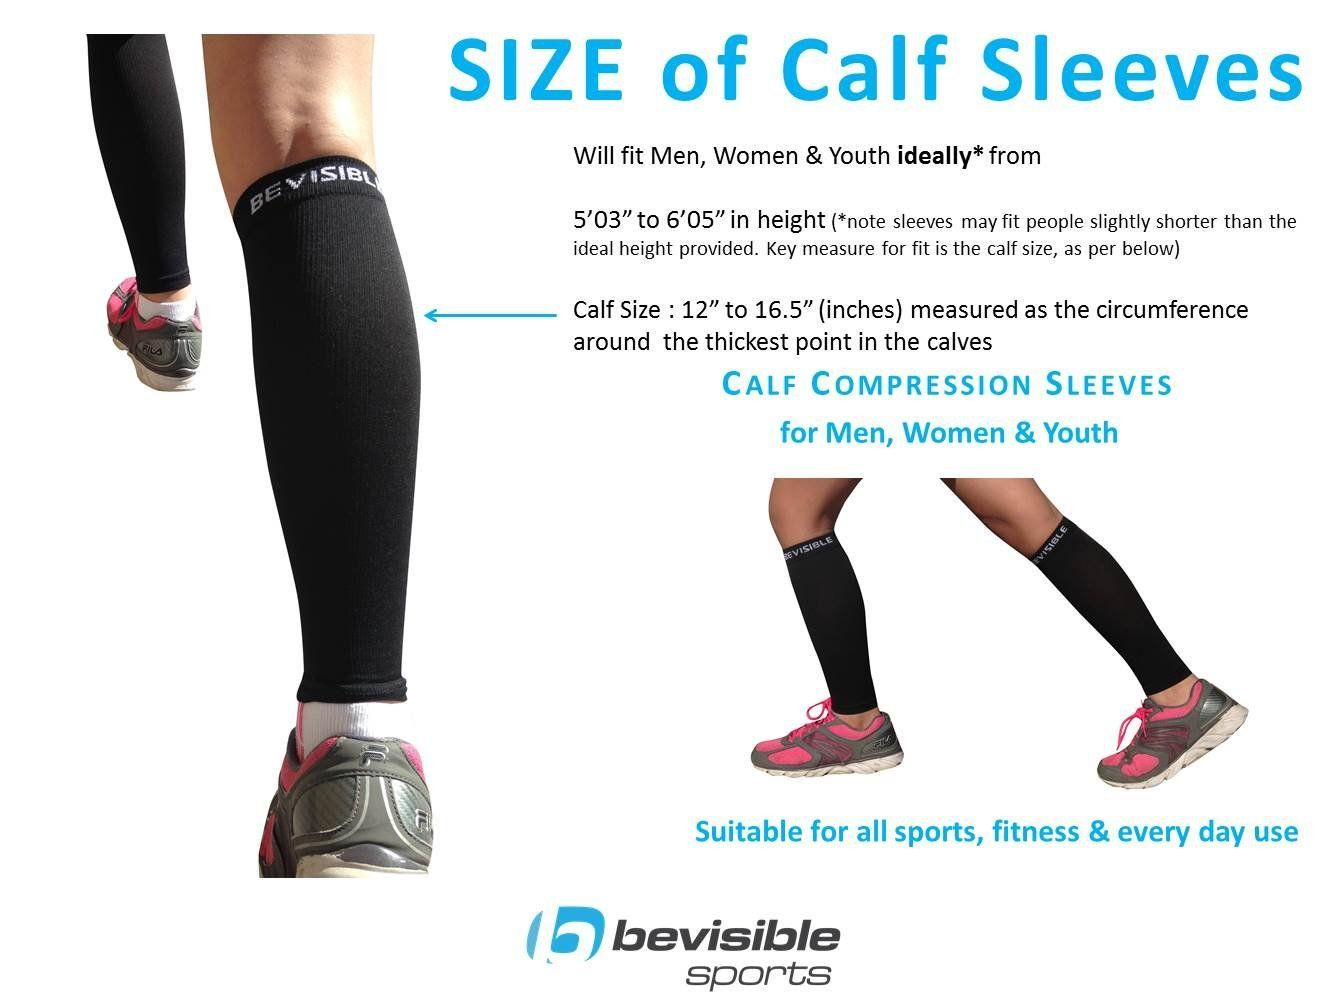 e16322d87c Calf Compression Sleeve - BeVisible Sports Men and Women's Leg Compression  Sleeves - True Graduated Compression